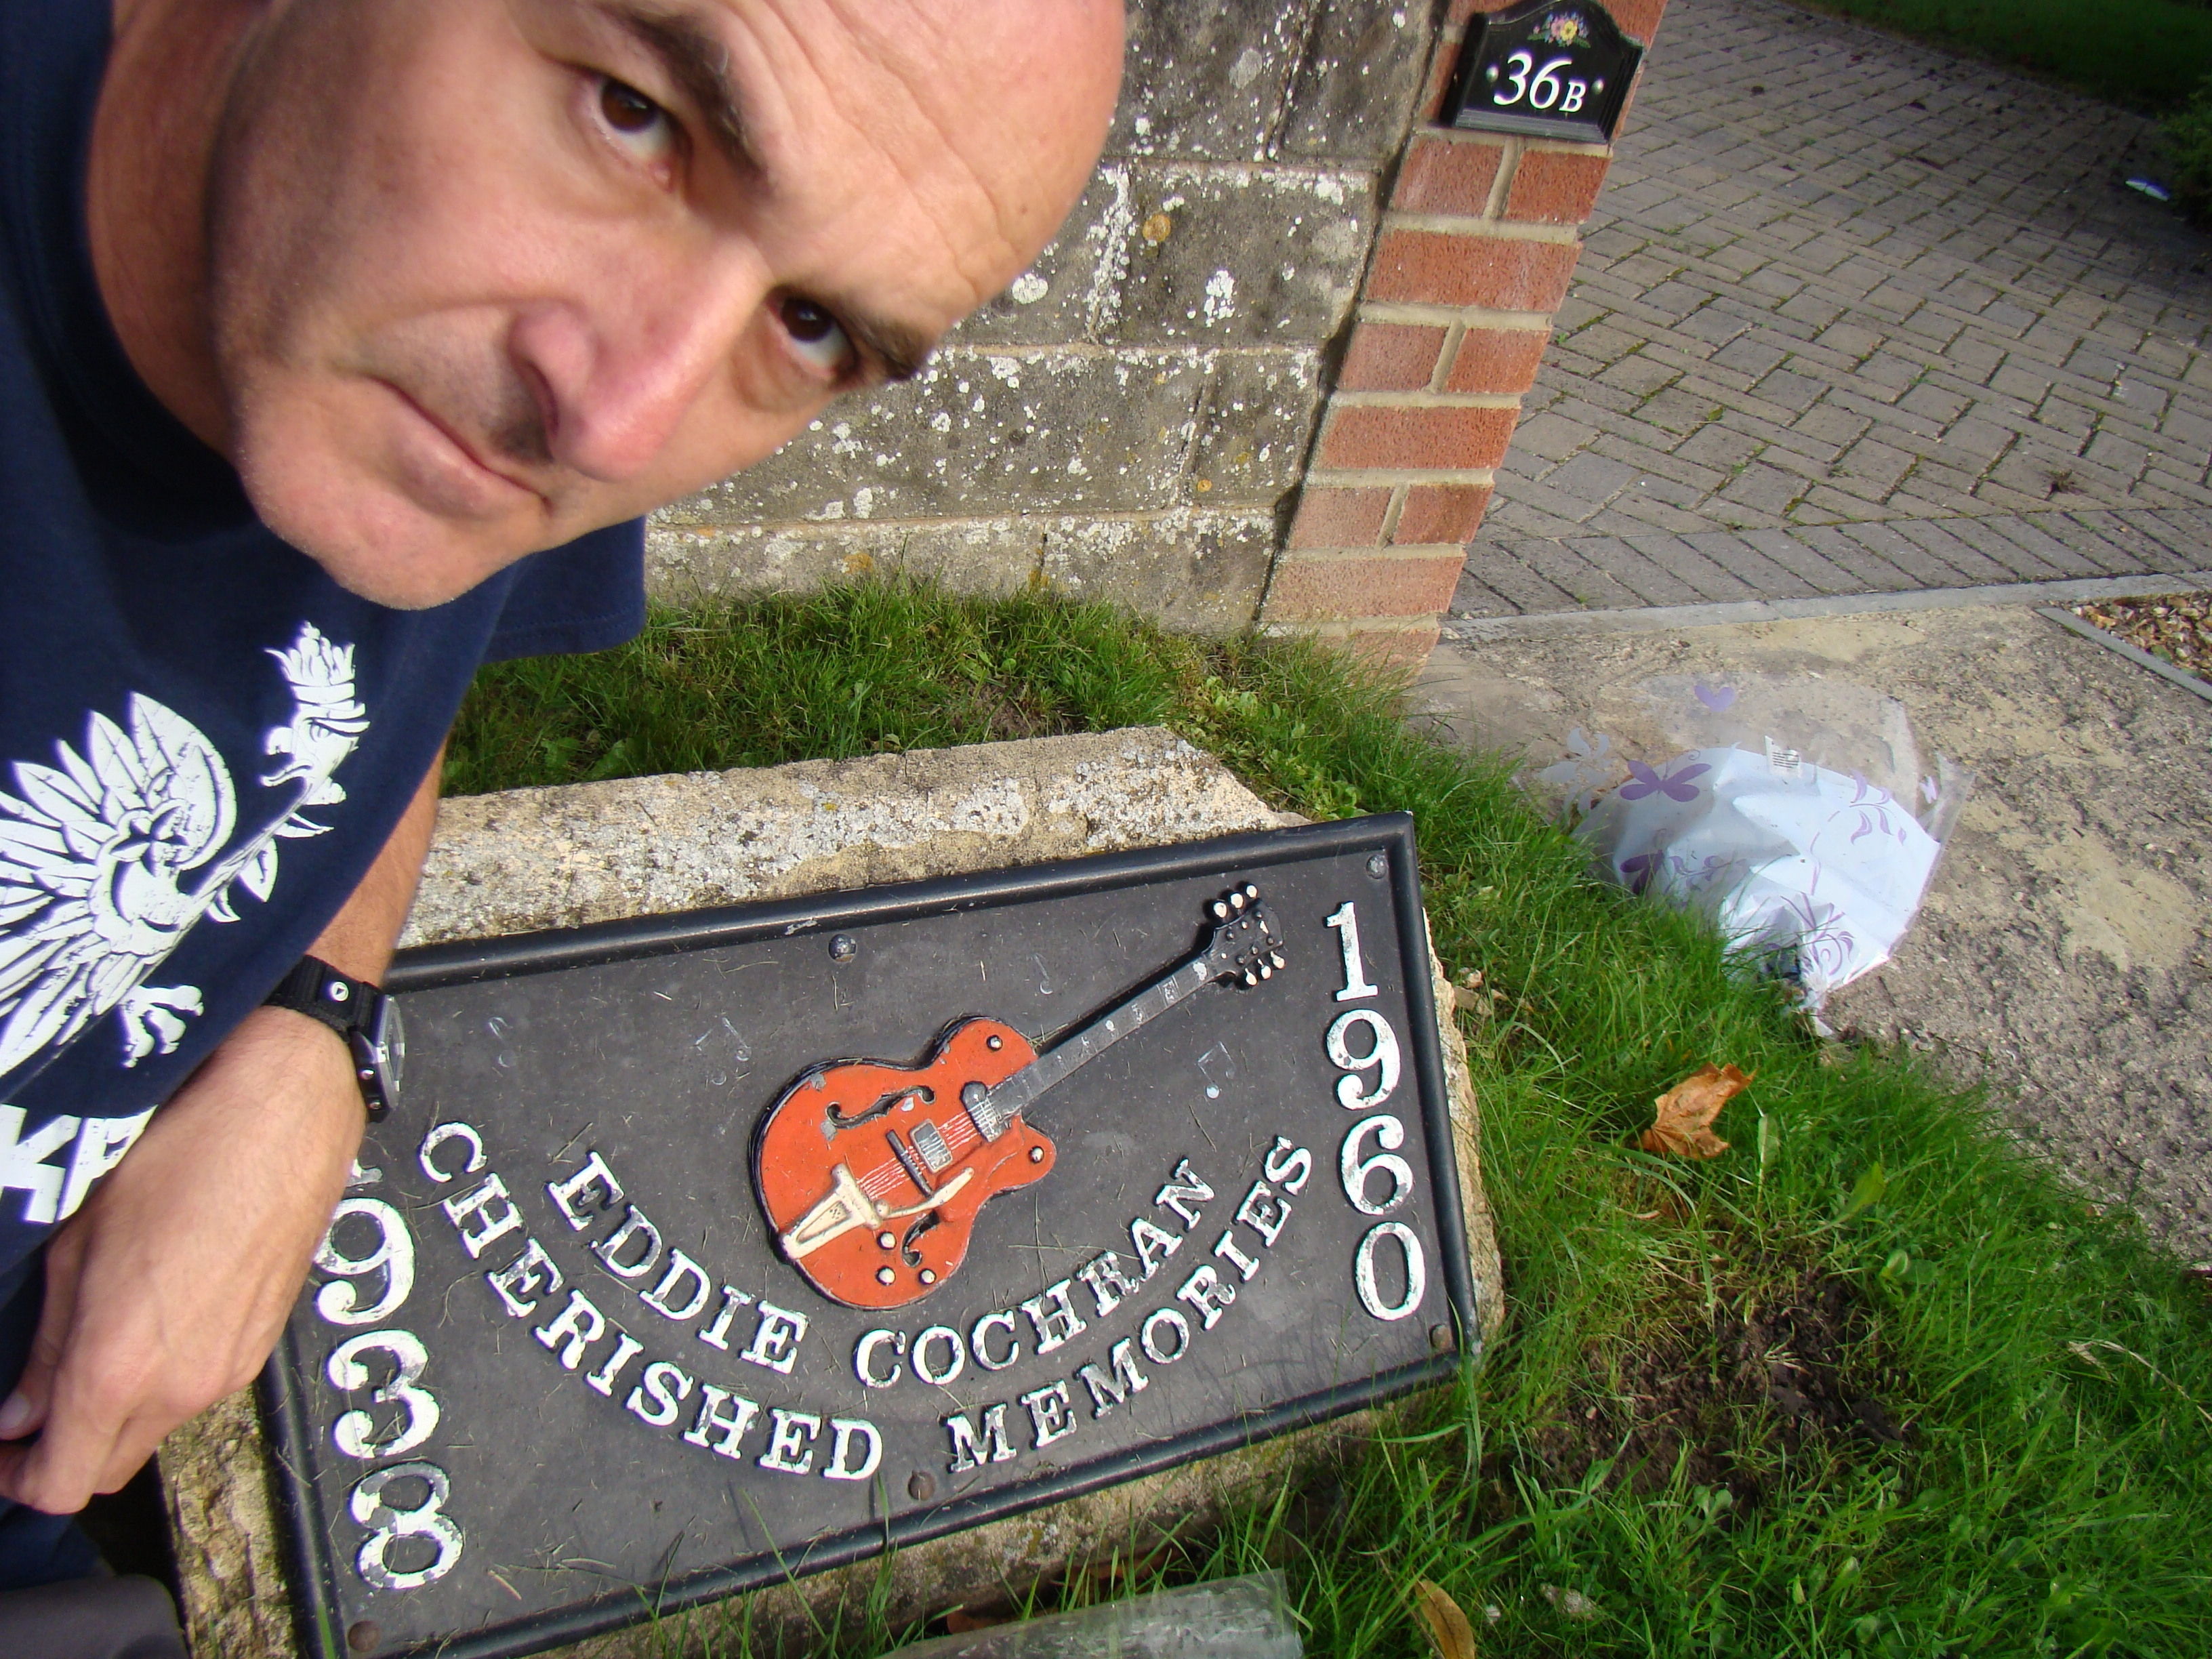 The marker at the Eddie Cochran crash site • Rowden Hill, Chippenham